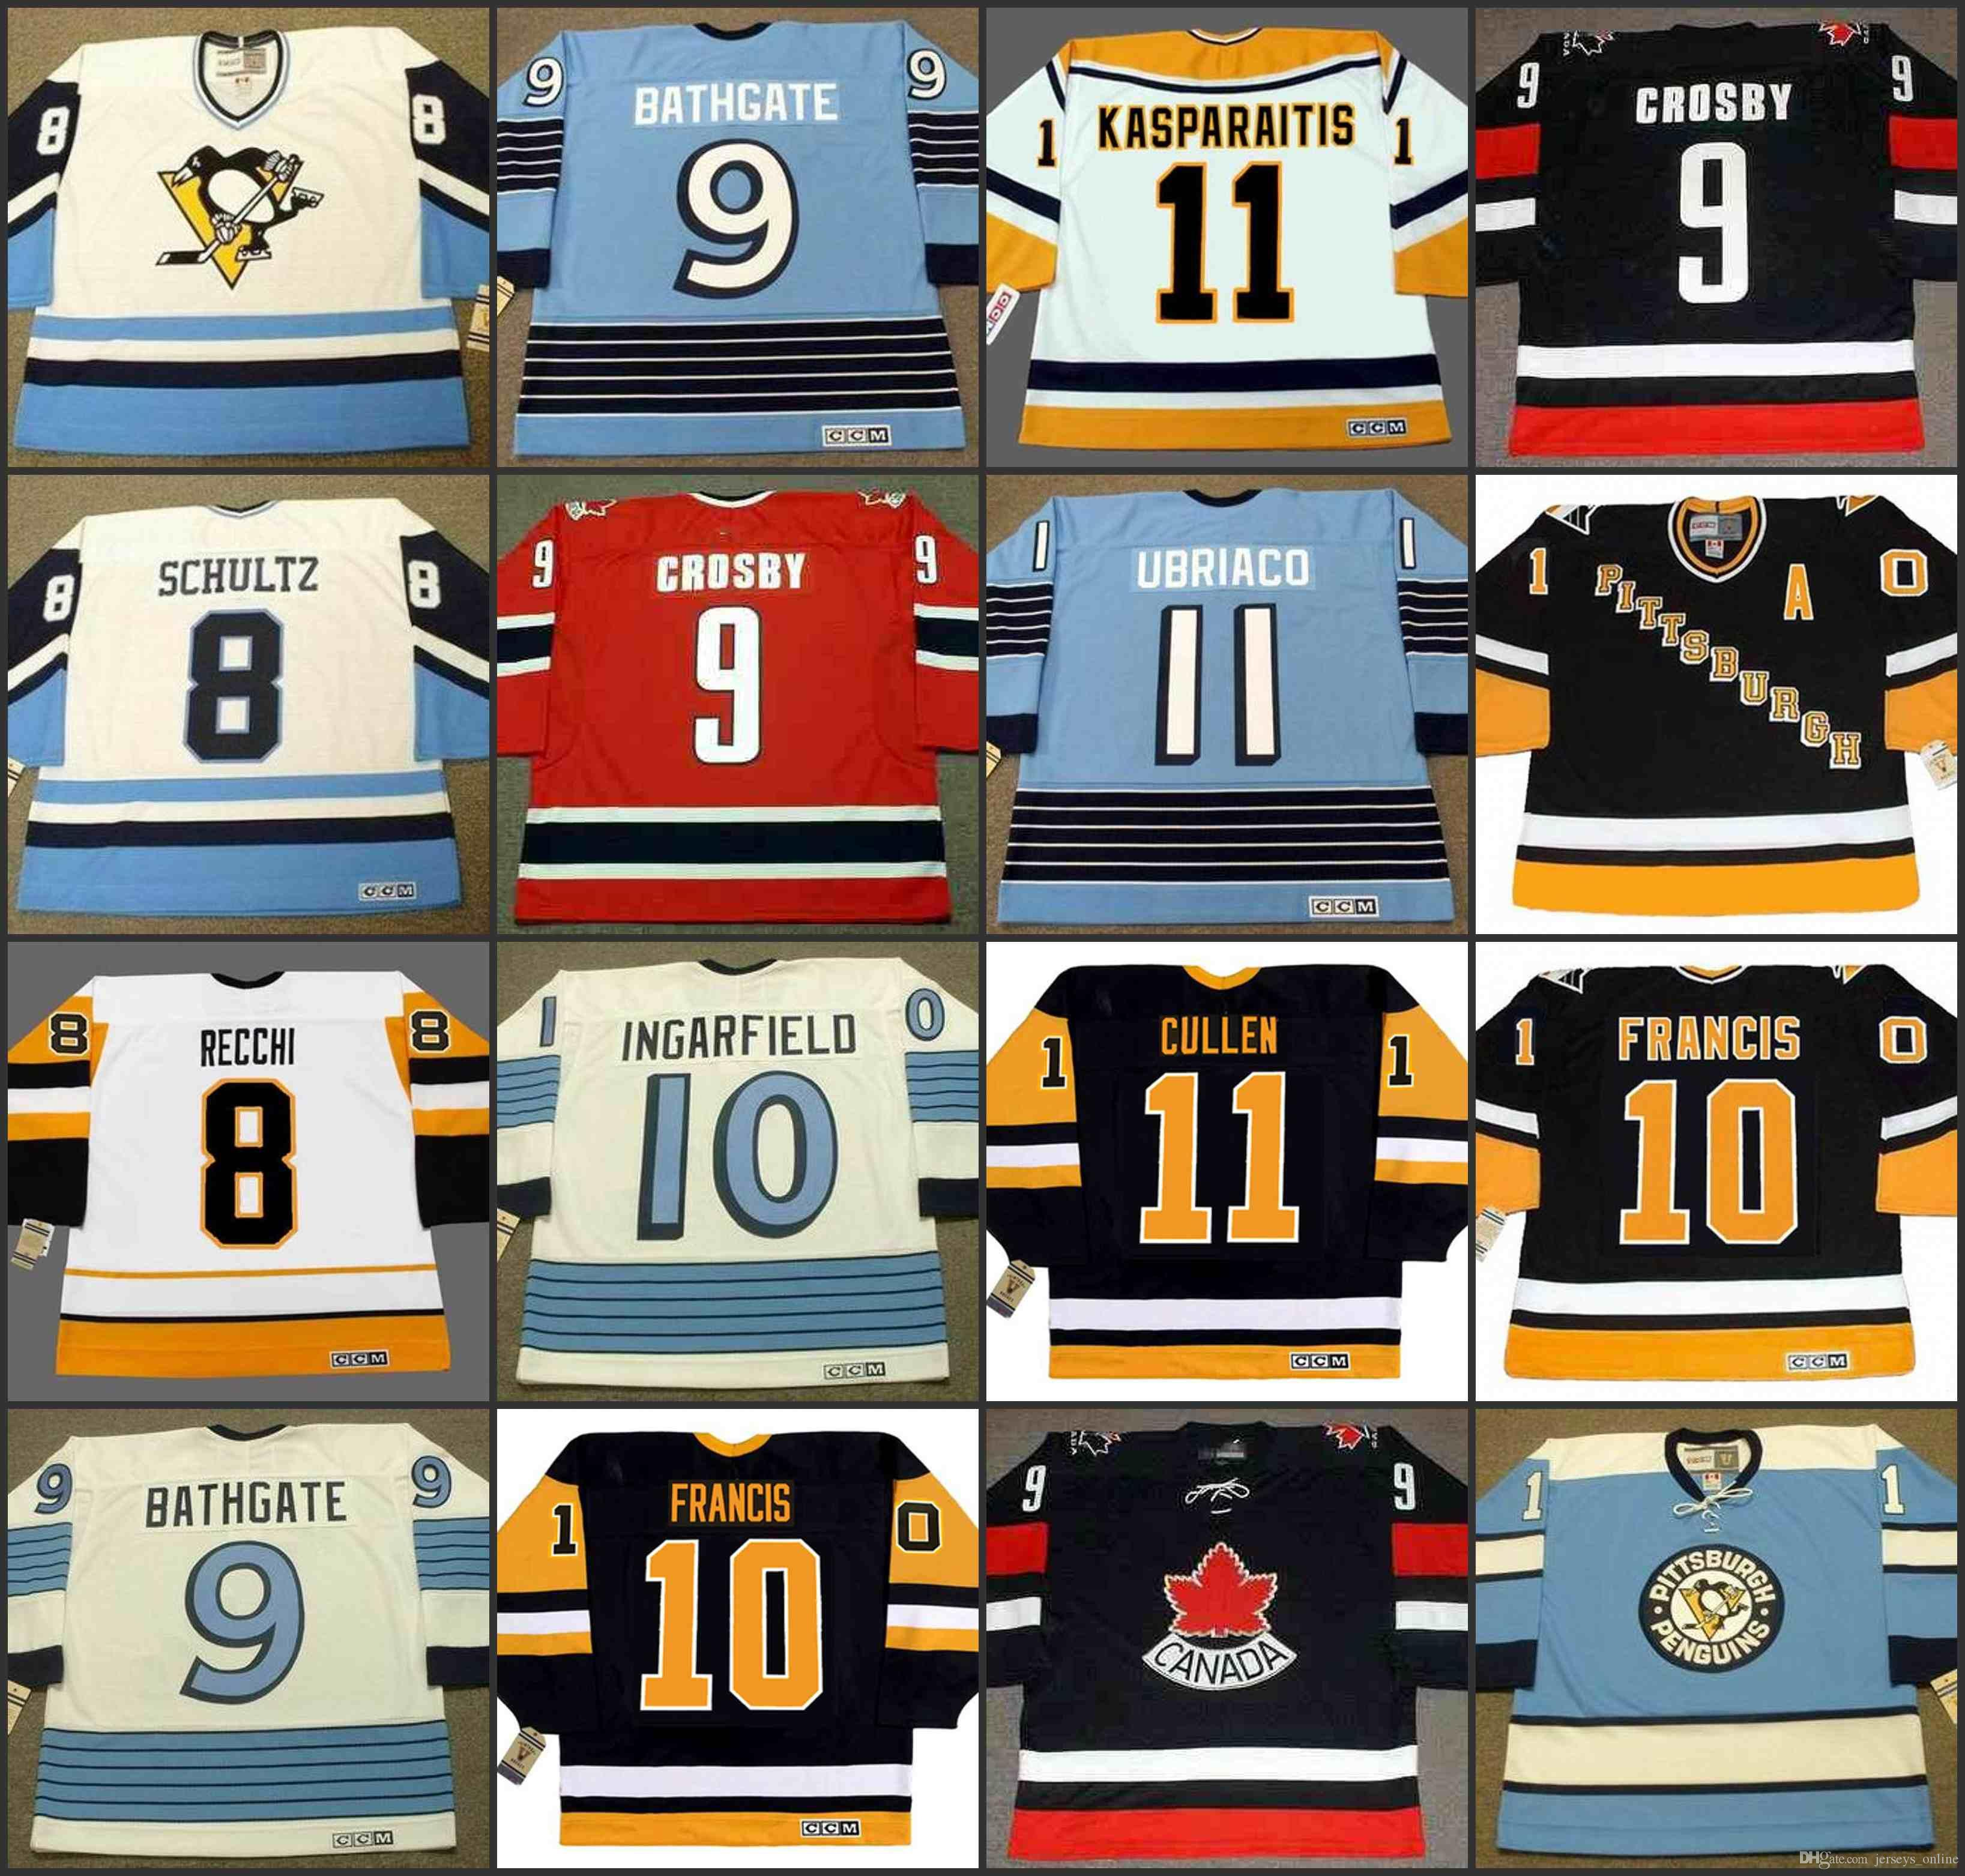 online store 42456 f9130 2019 Pittsburgh Penguins 8 DAVE SCHULTZ 9 ANDY BATHGATE 9 MARK JOHNSO 9 RON  FRANCIS 10 DAN QUINN CCM NHL Vintage Away Hockey Jersey Stitched From ...